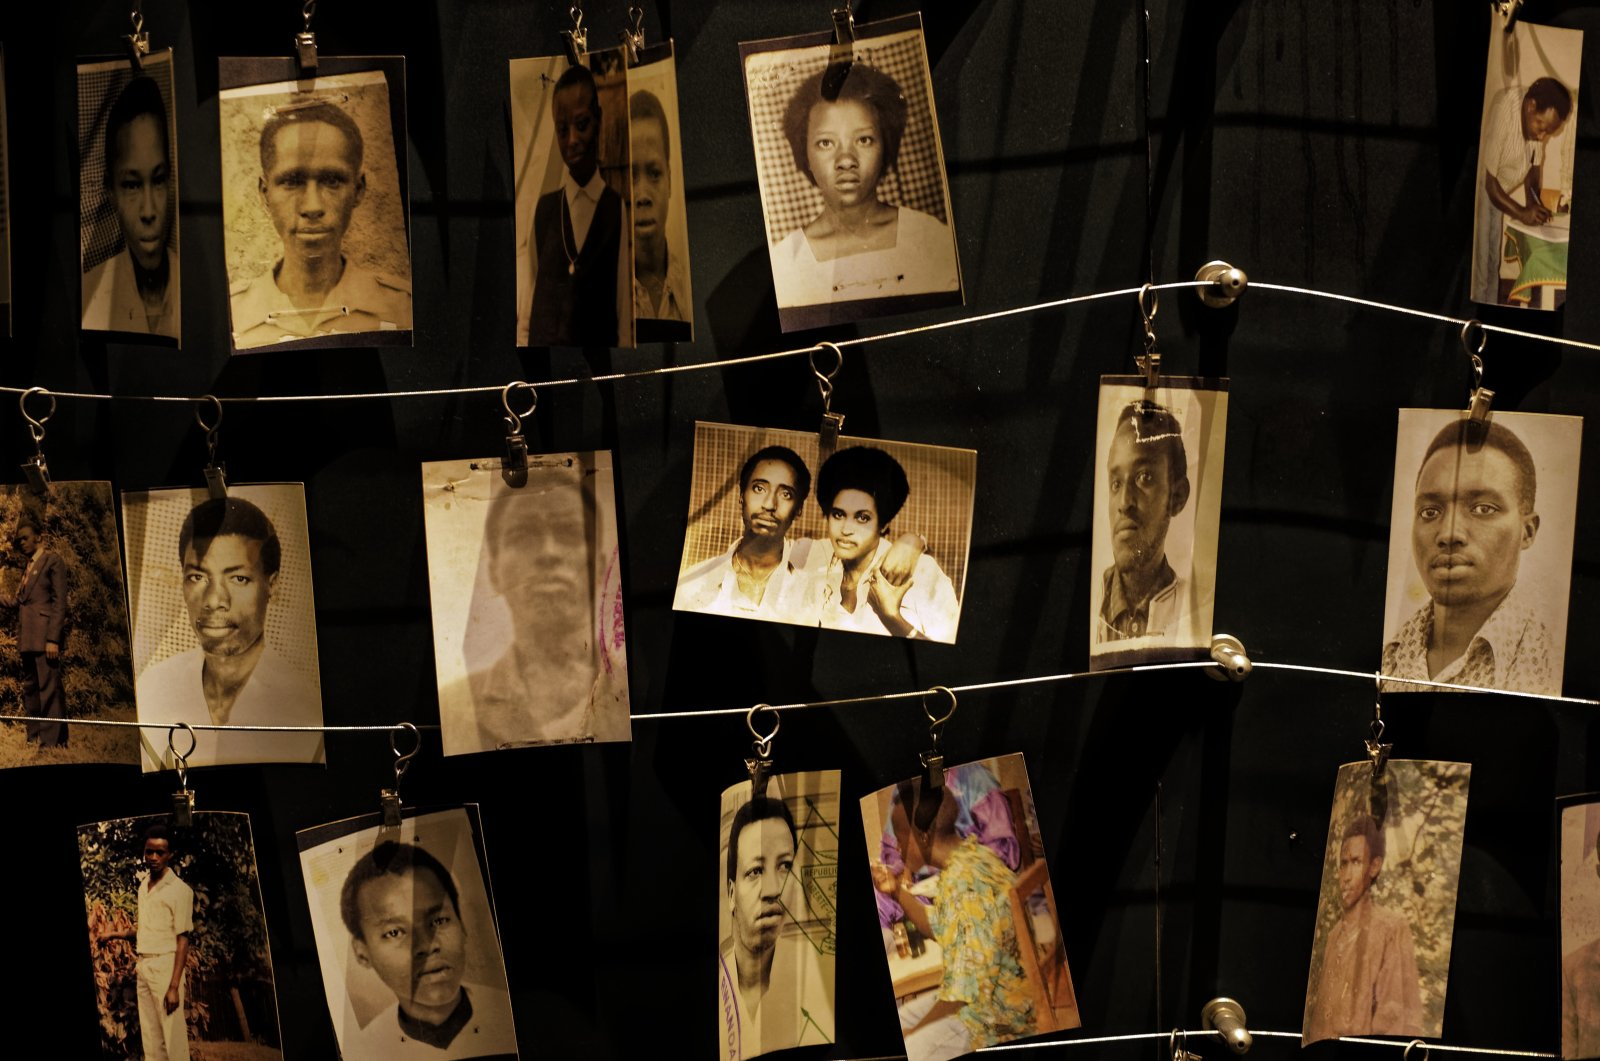 Family photographs of some of those who died in the 1994 Rwandan genocide hang on display in an exhibition at the Kigali Genocide Memorial center in the capital Kigali, Rwanda, April 5, 2019. (AP Photo)